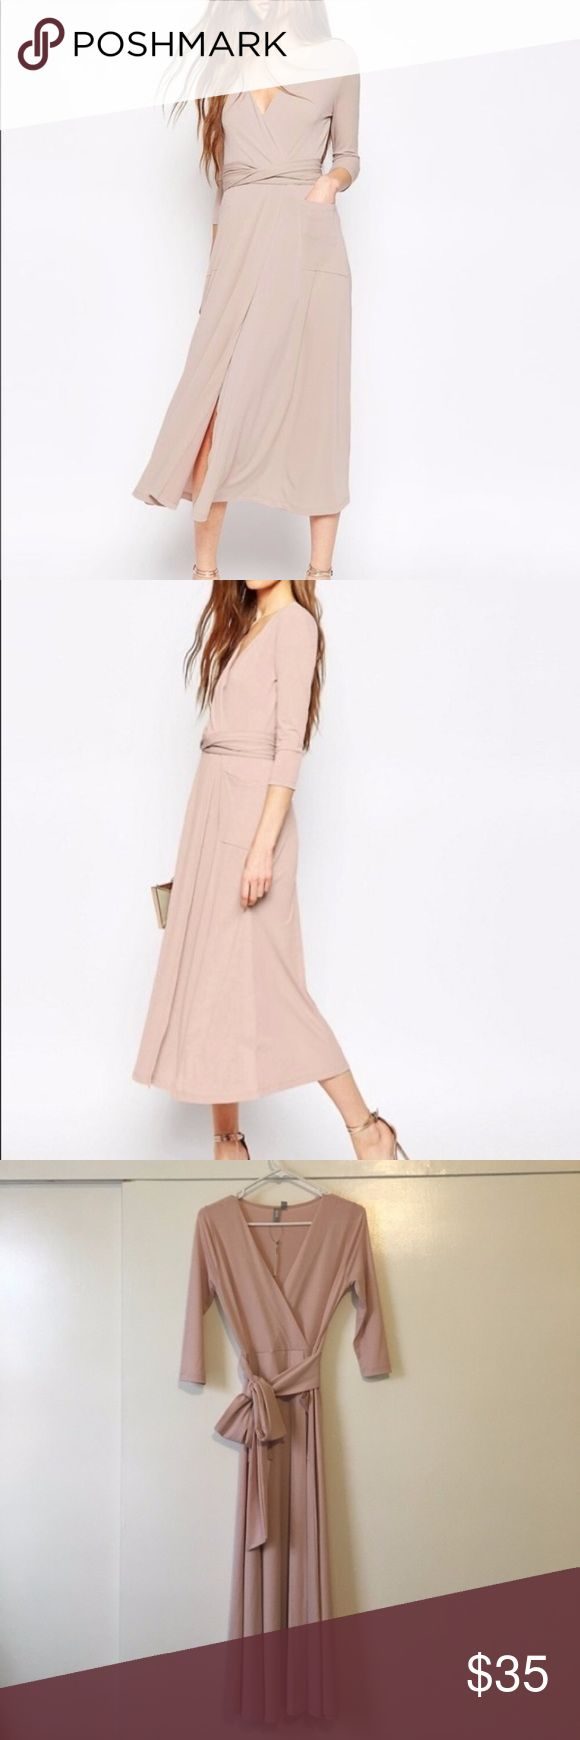 ASOS crepe wrap dress Reposh!  Pics are also from the original seller. ASOS wrap dress in blush pink. Crepe material so fits snug to the body. Two front pockets, v neck, tie waist and new with tags. I would say it's best for women 5'4 and up. Make an offer! ASOS Dresses Midi